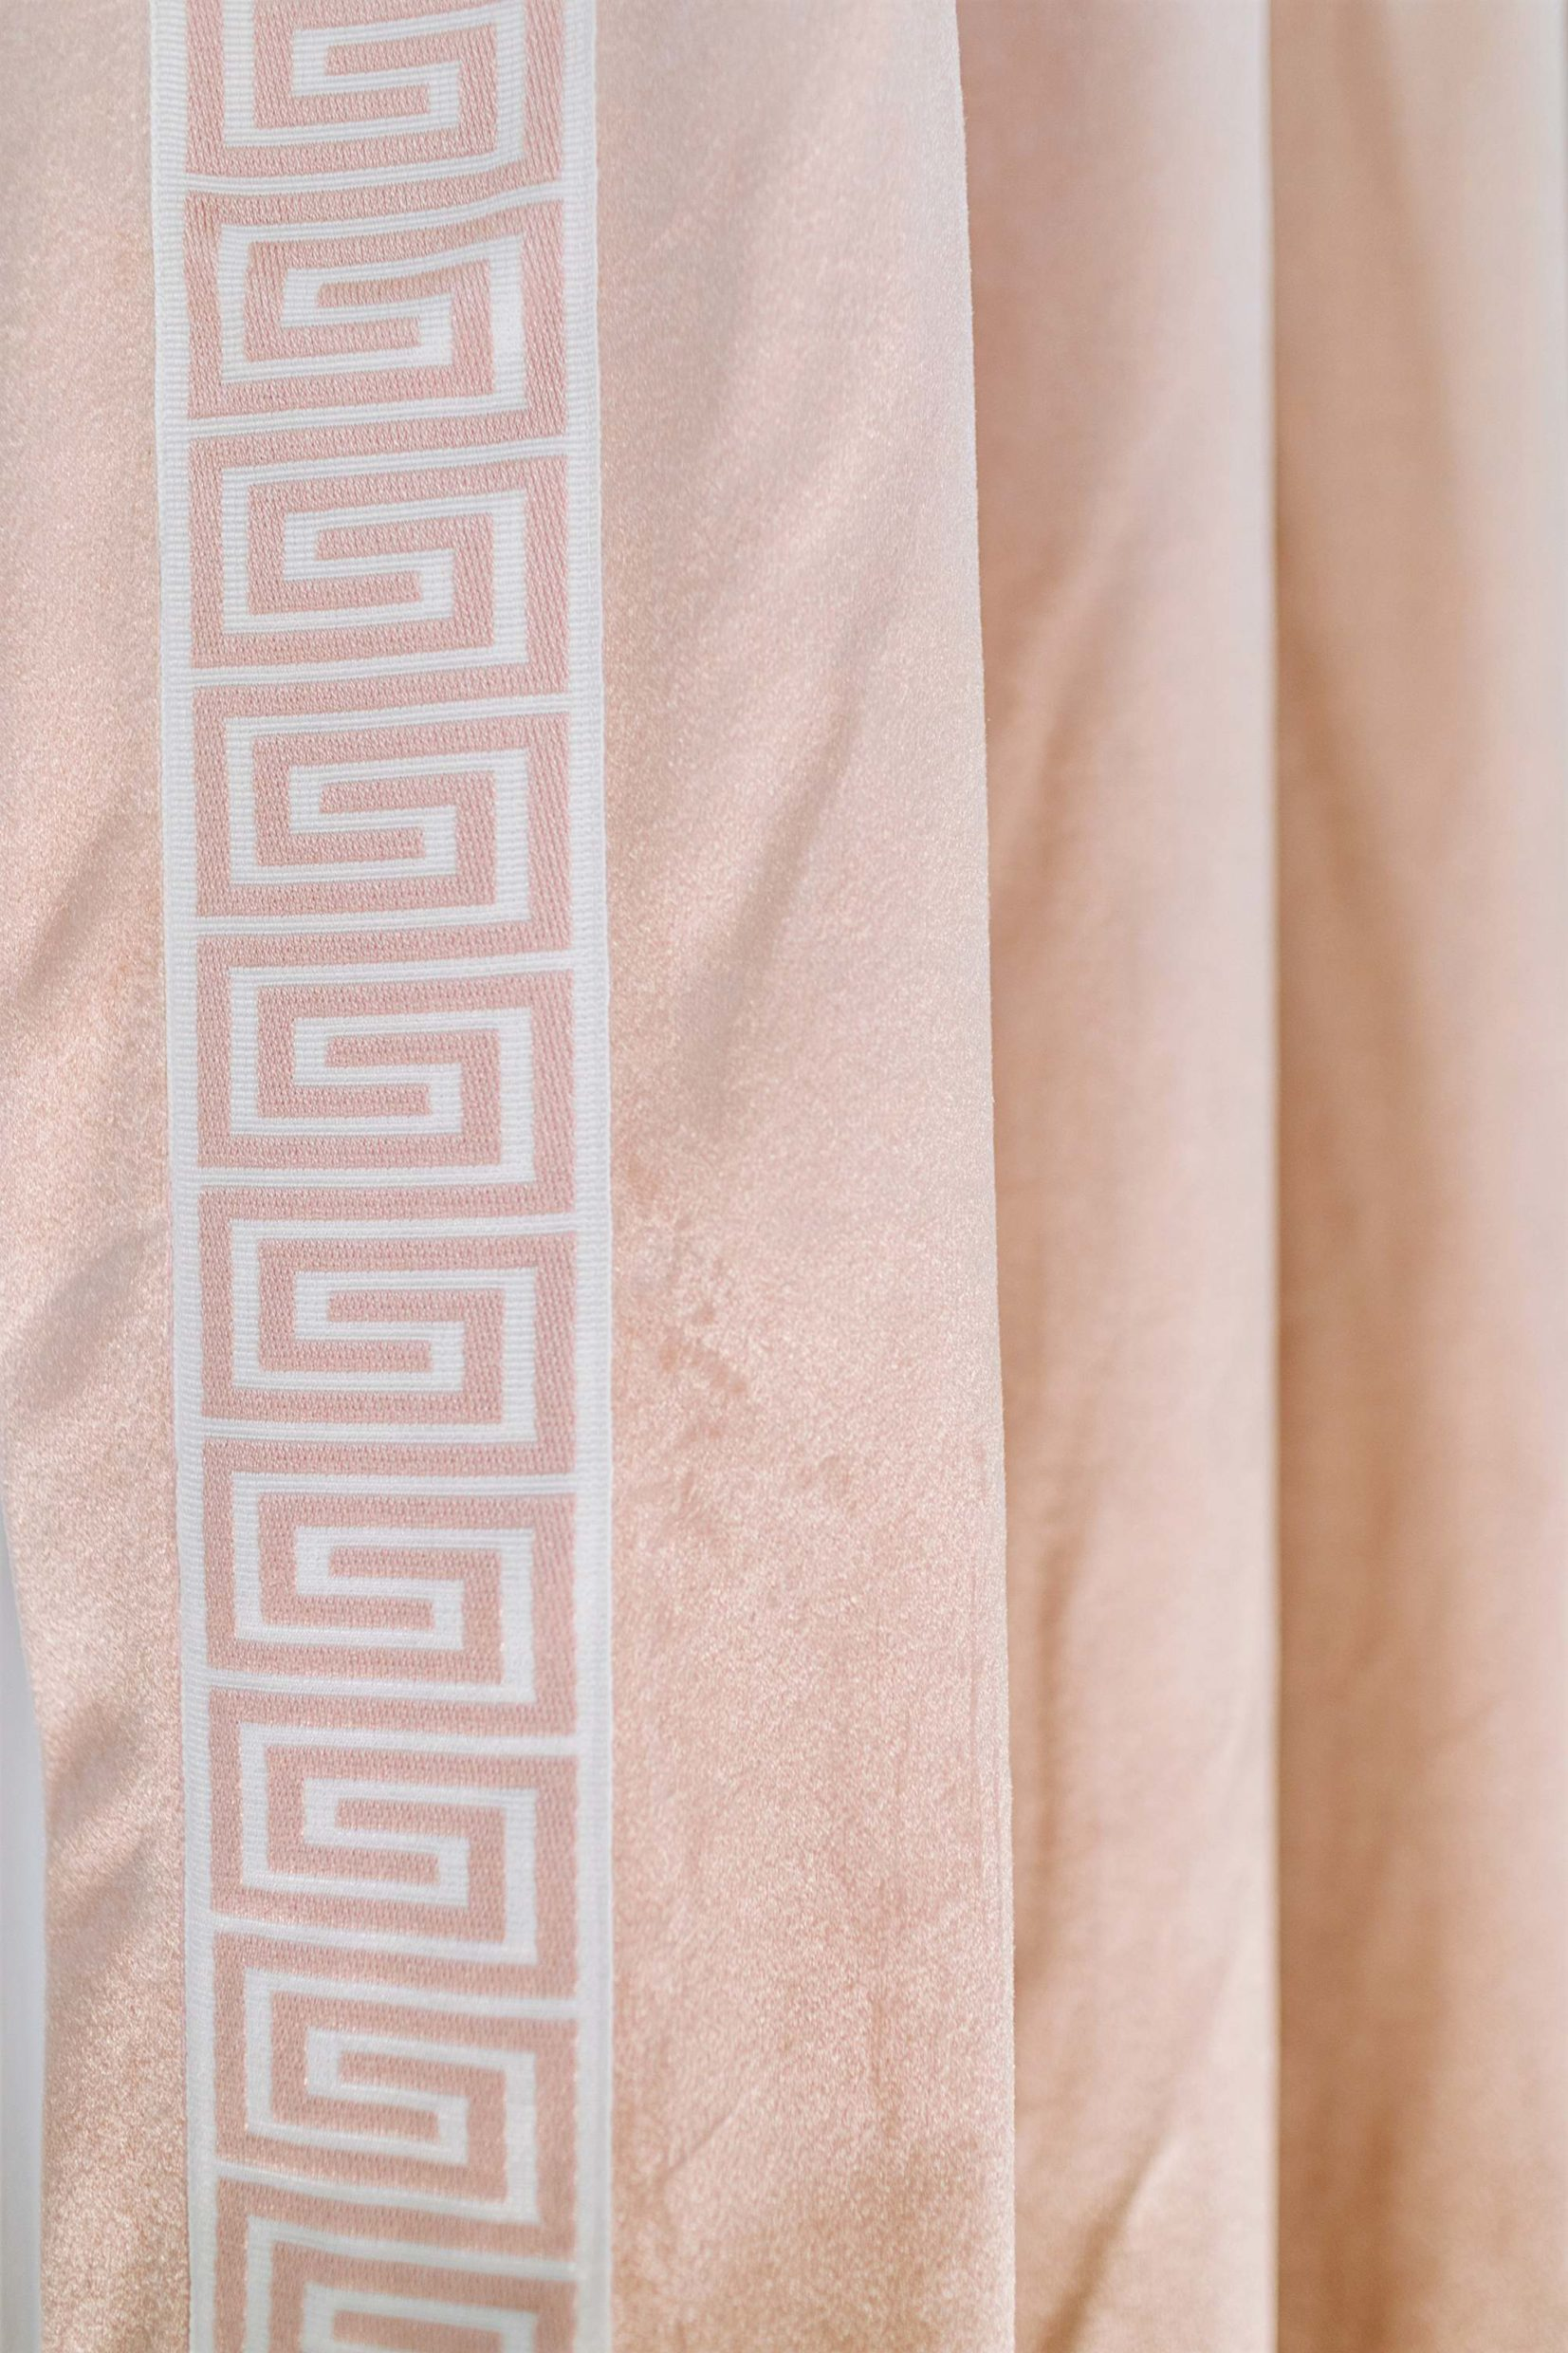 diy make it look like custom curtains with store bought pleated curtains - see blog post curtain trim #curtains